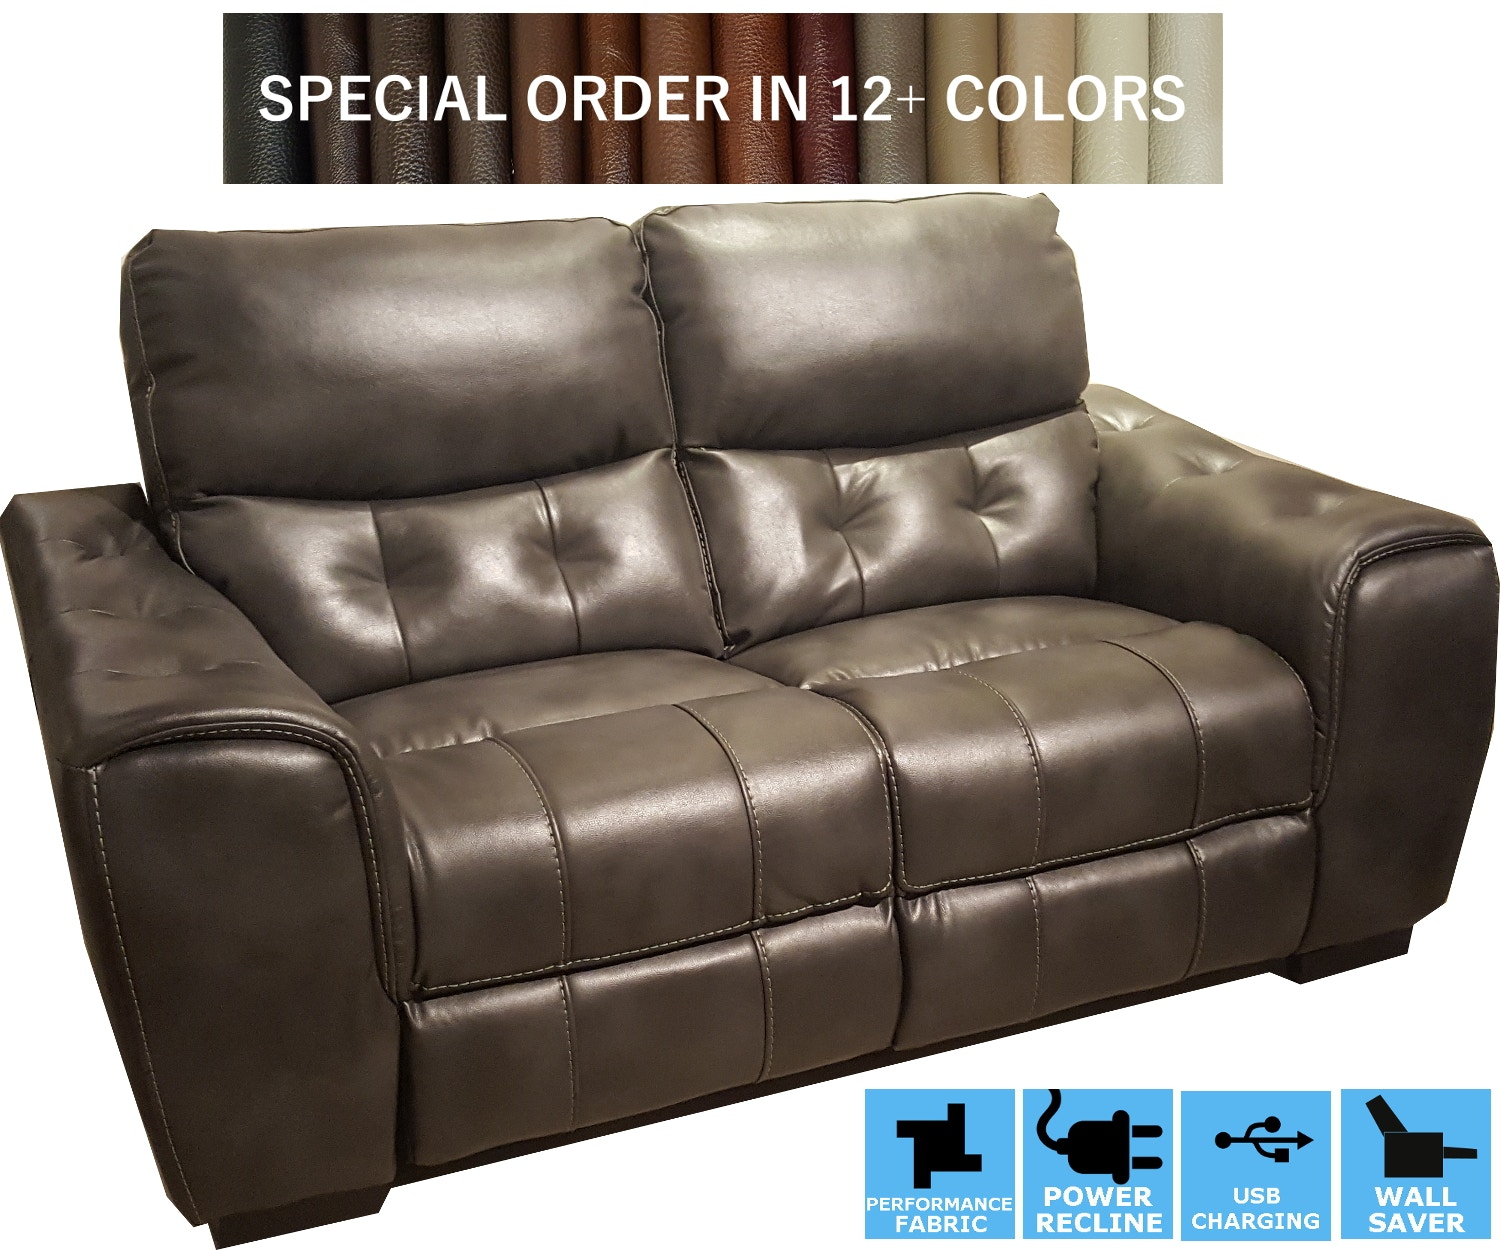 power recliner sofa canada extra large corner sofas finesse motion living room trevisio recline loveseat